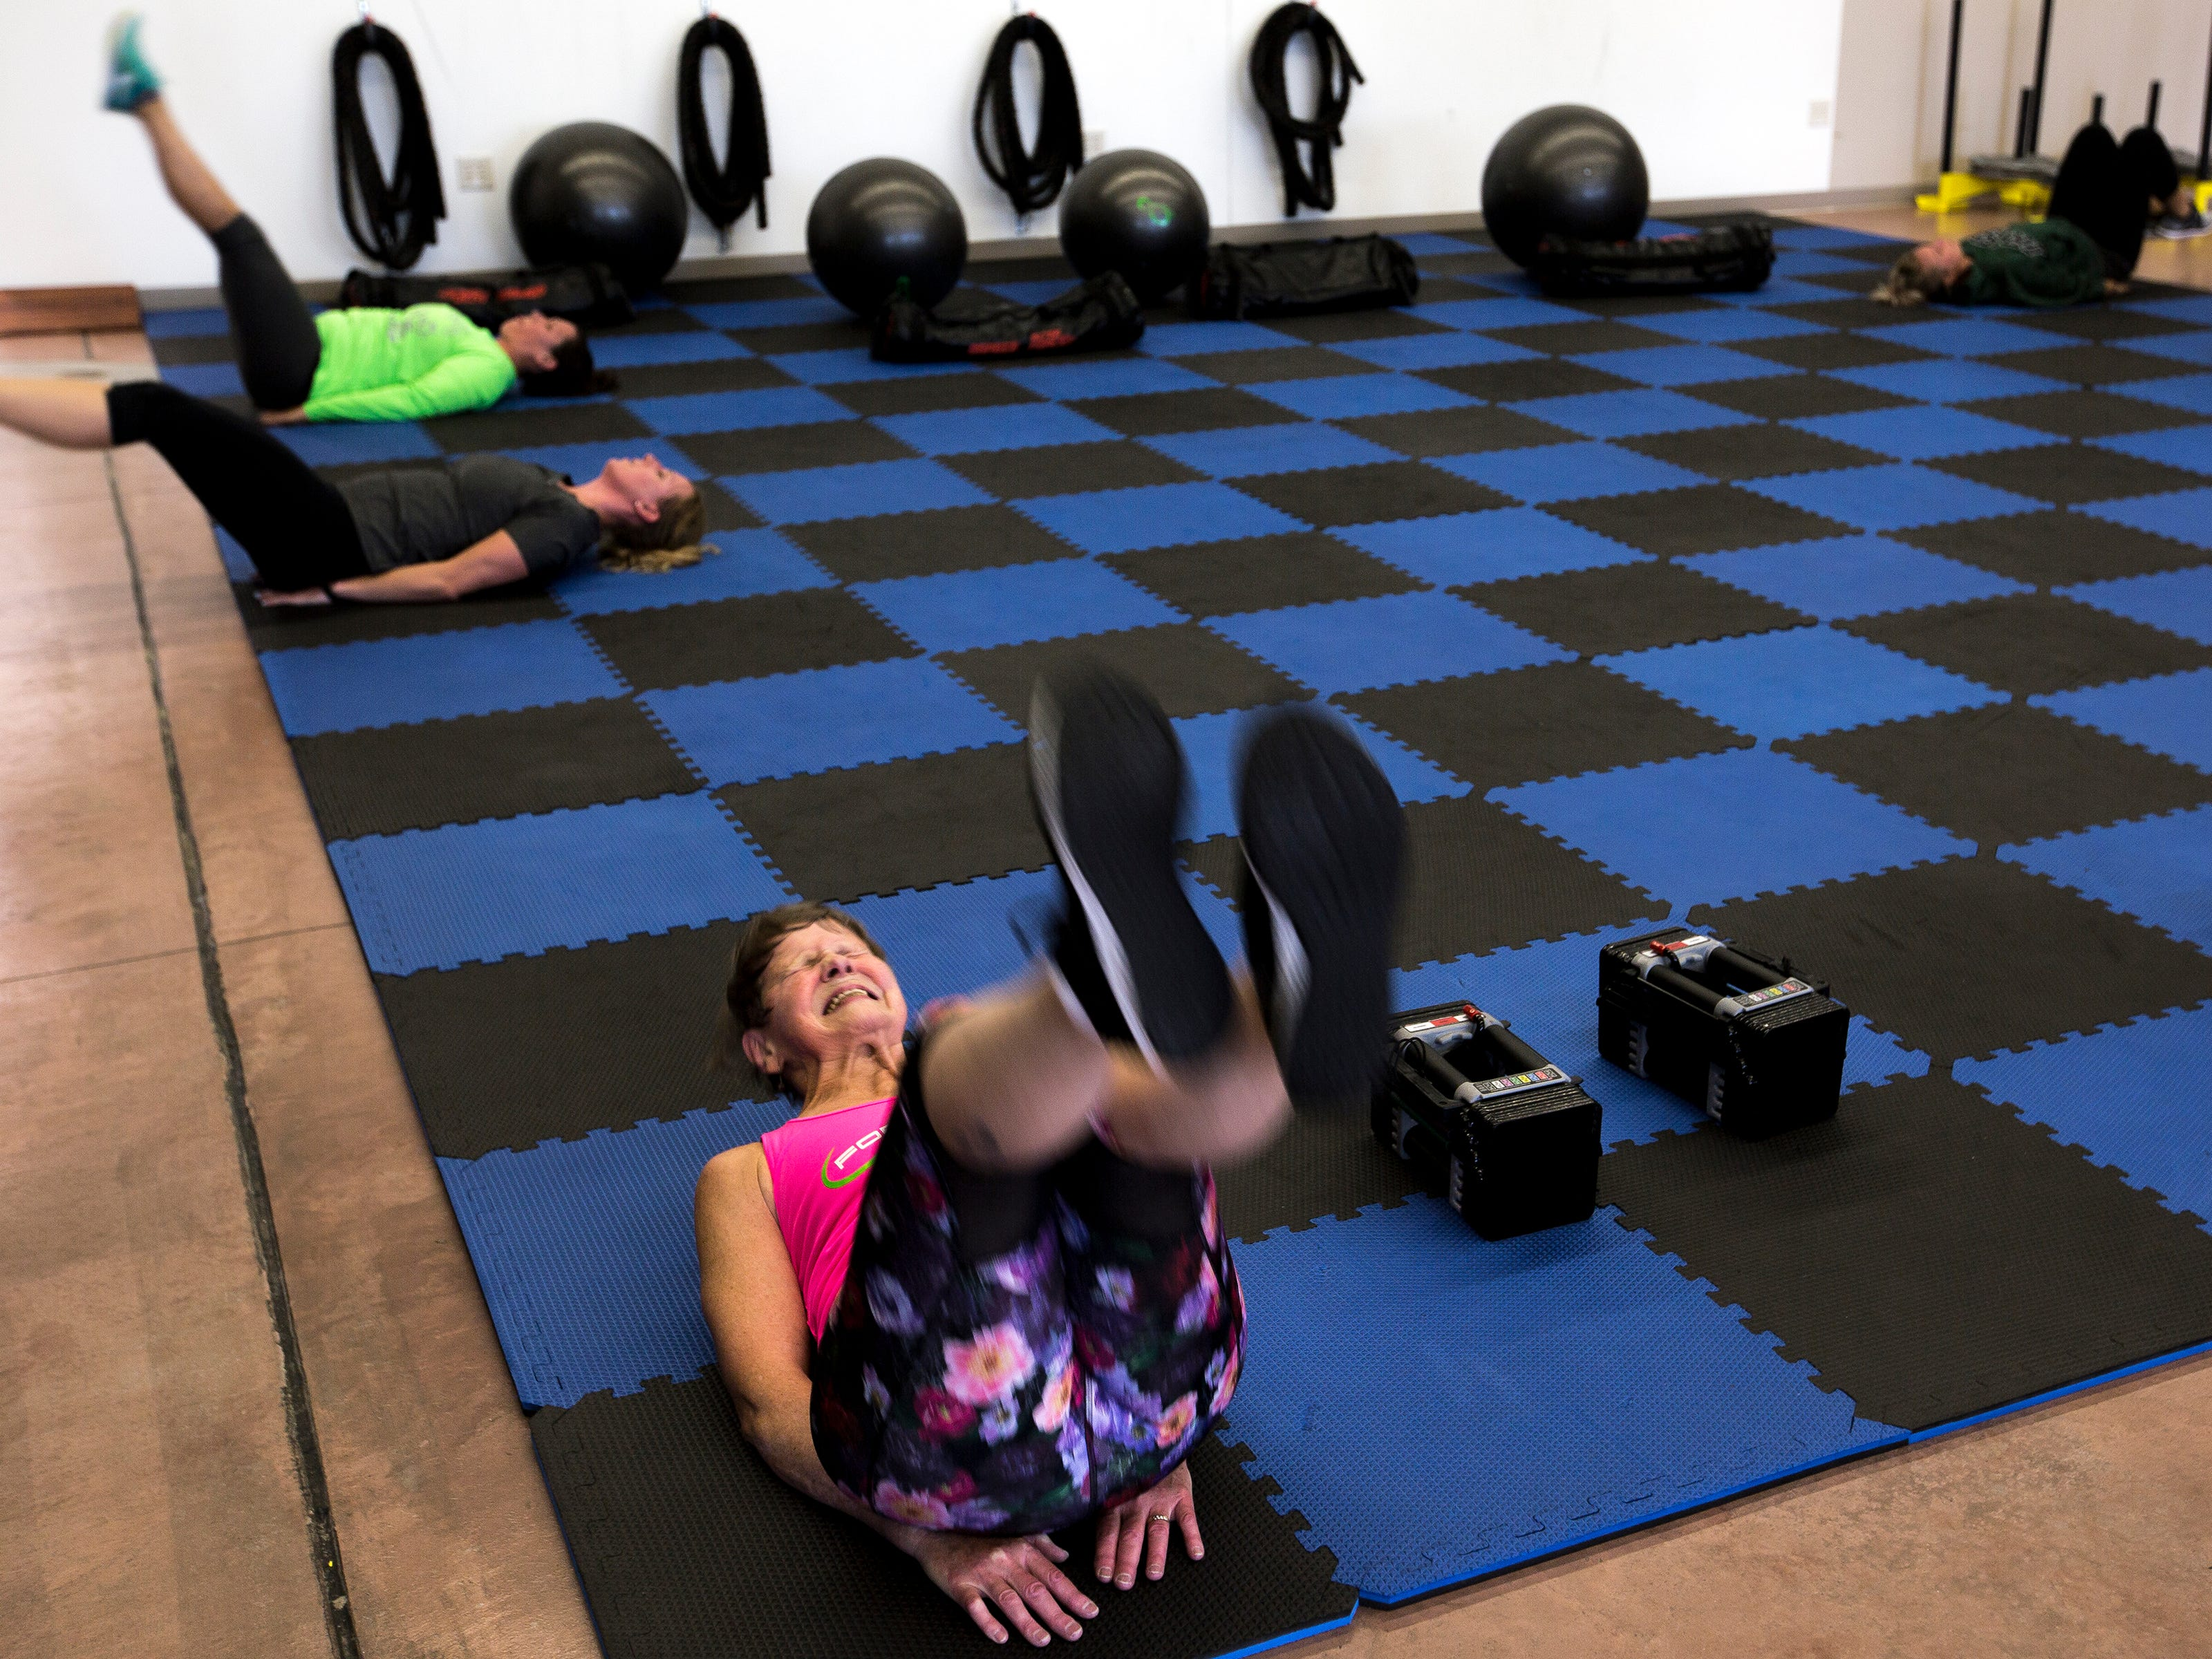 Betty Lou Sweeney does ab excercises near the end of an interval training class at Forever Fit in Plover, Wis., September 12, 2018.